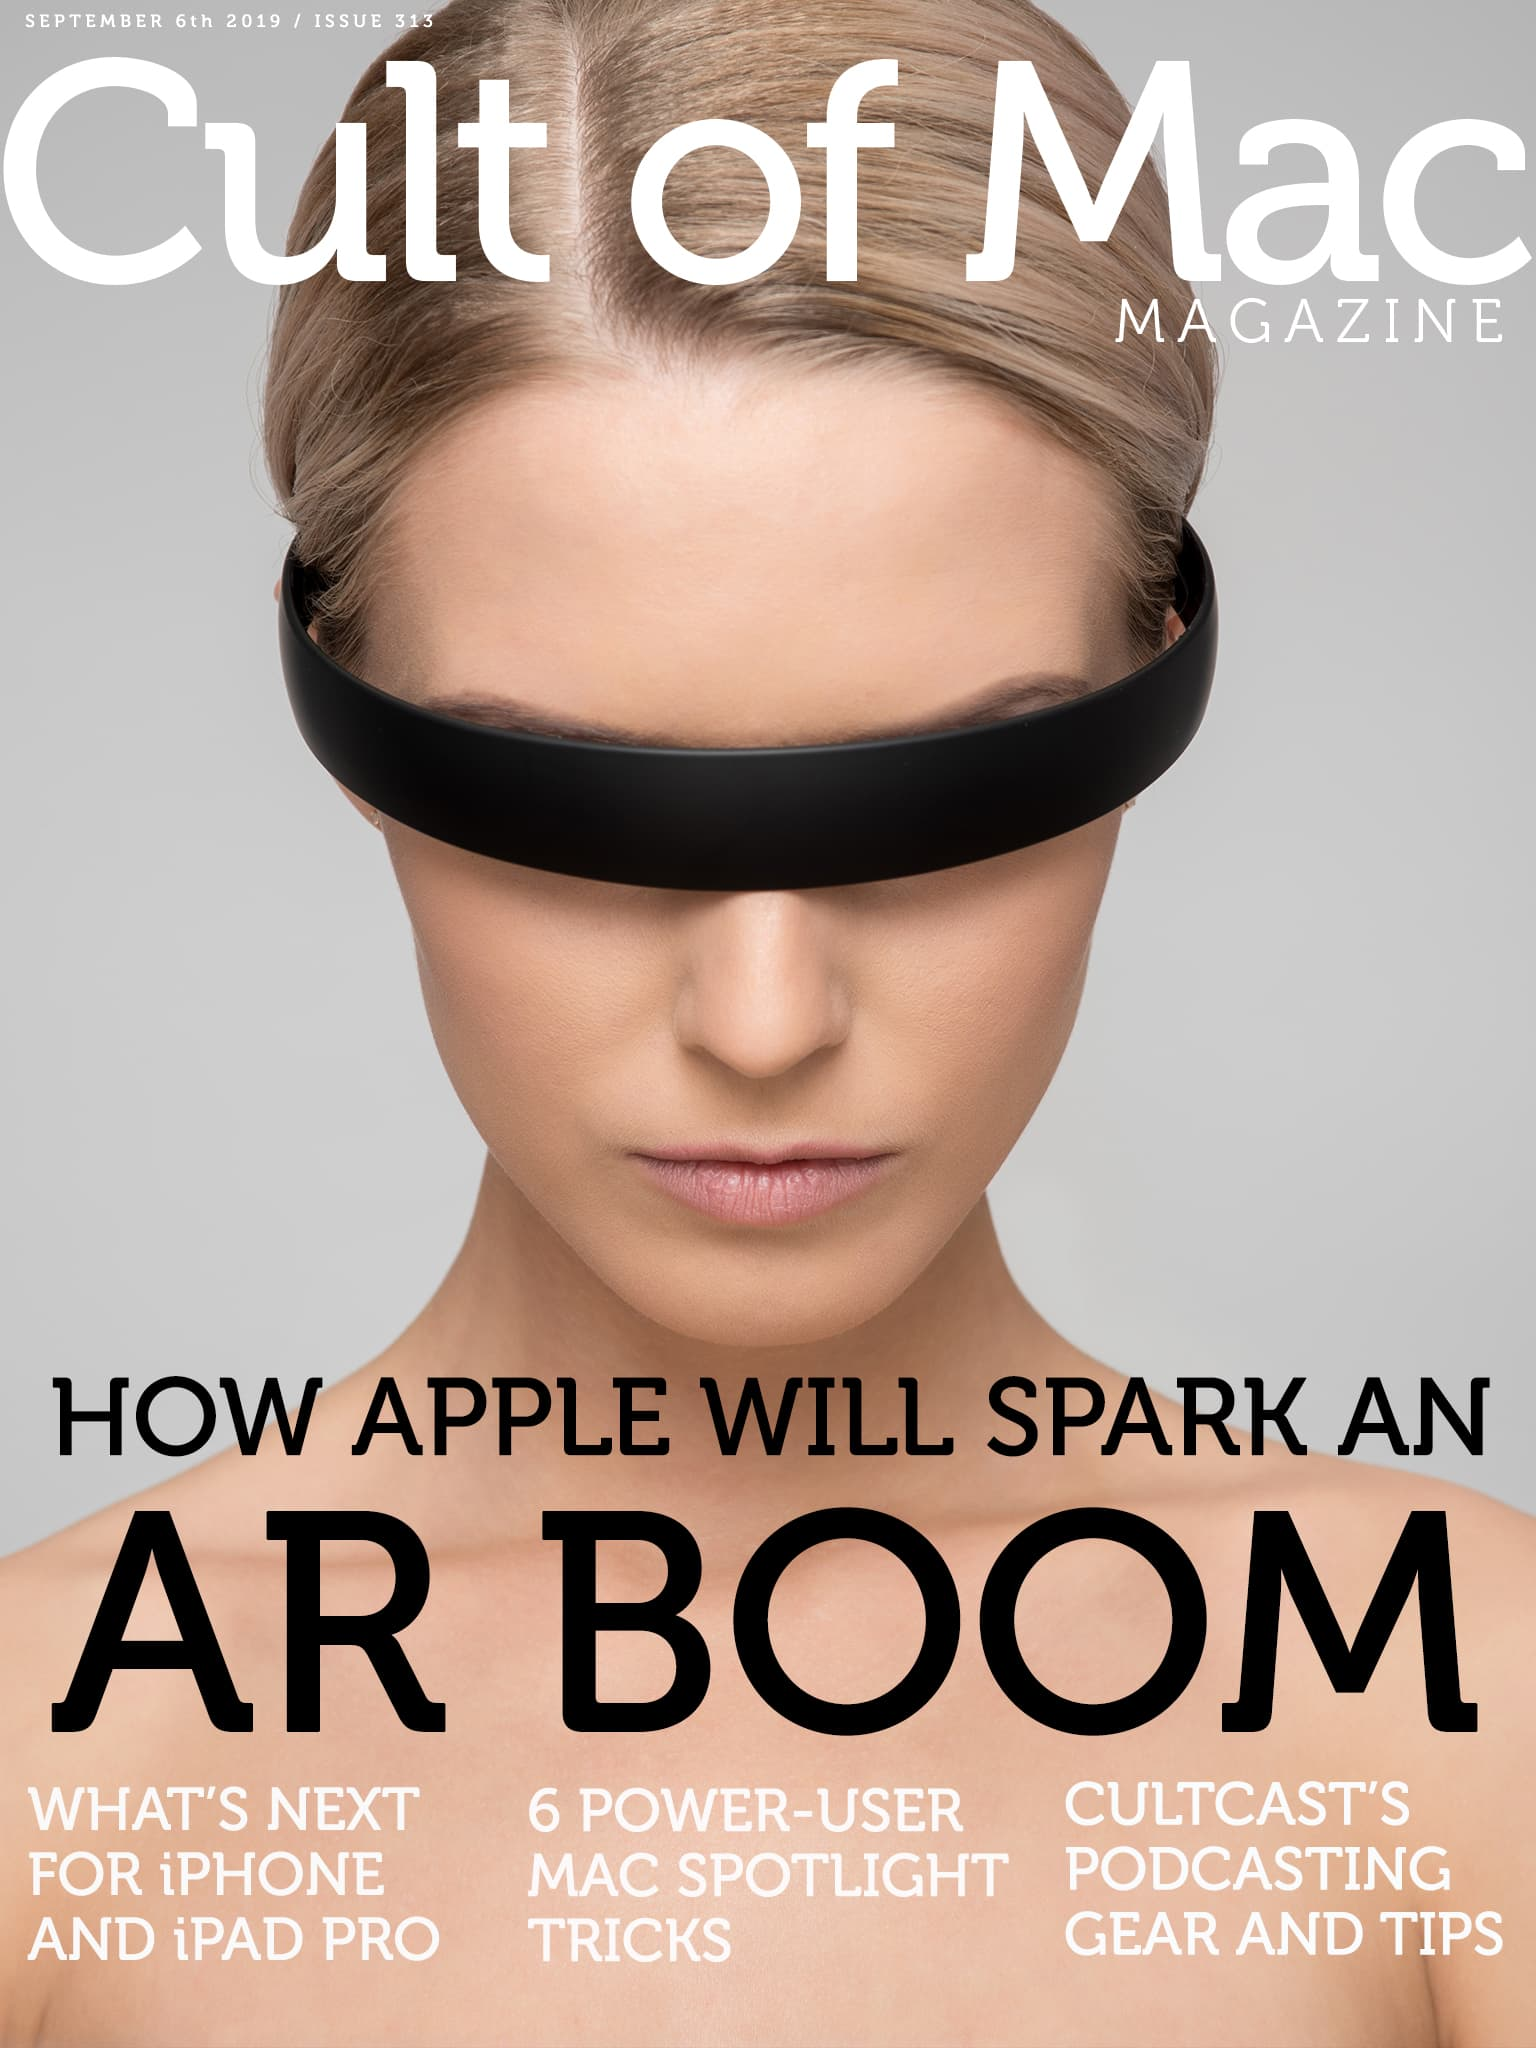 Apple's deep investment in augmented reality looks set to pay off.